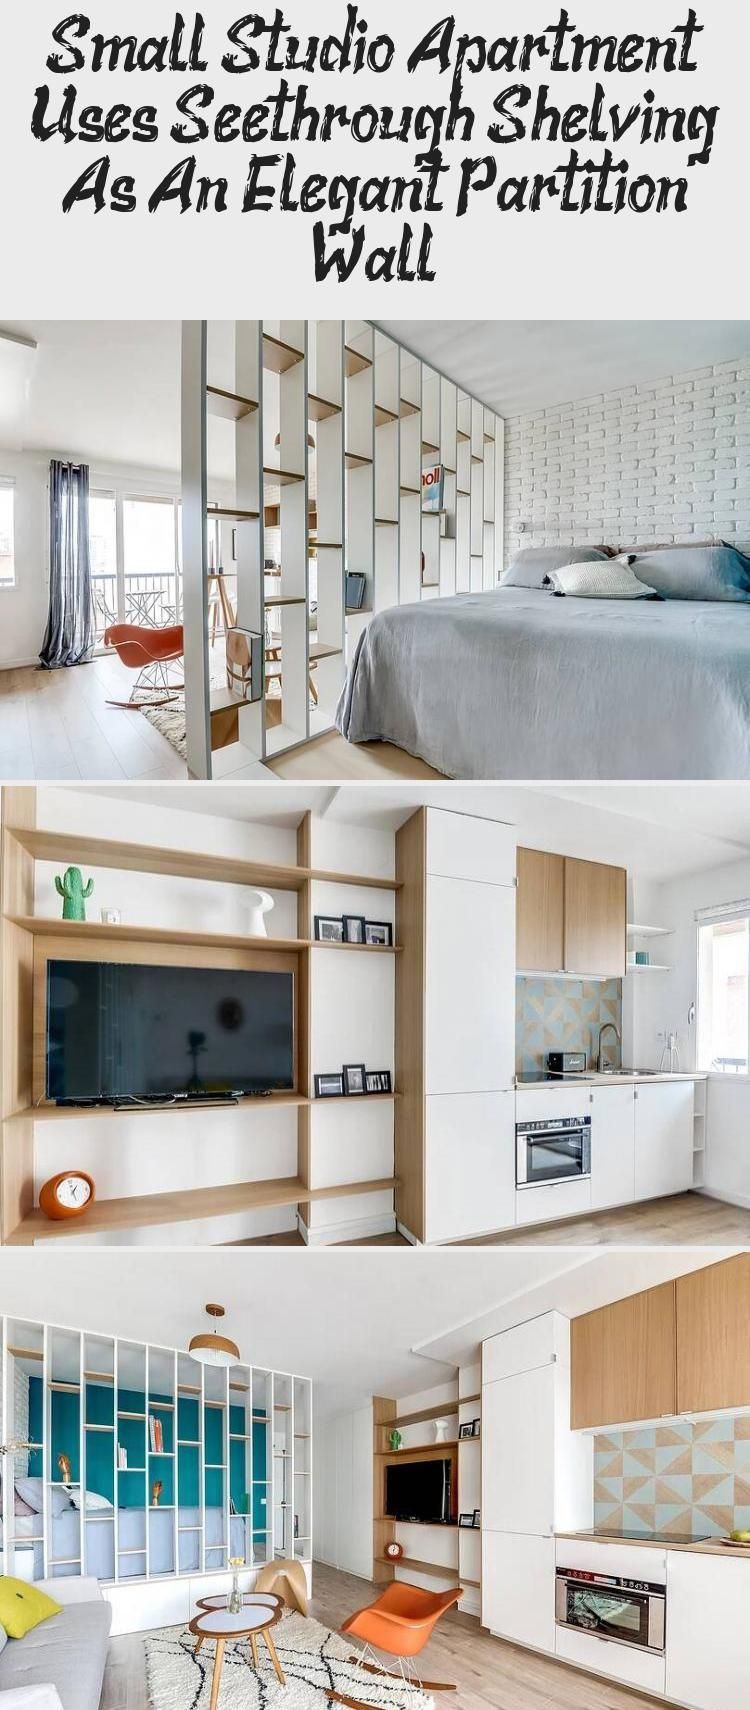 Small studio apartment uses see-through shelving as an ...